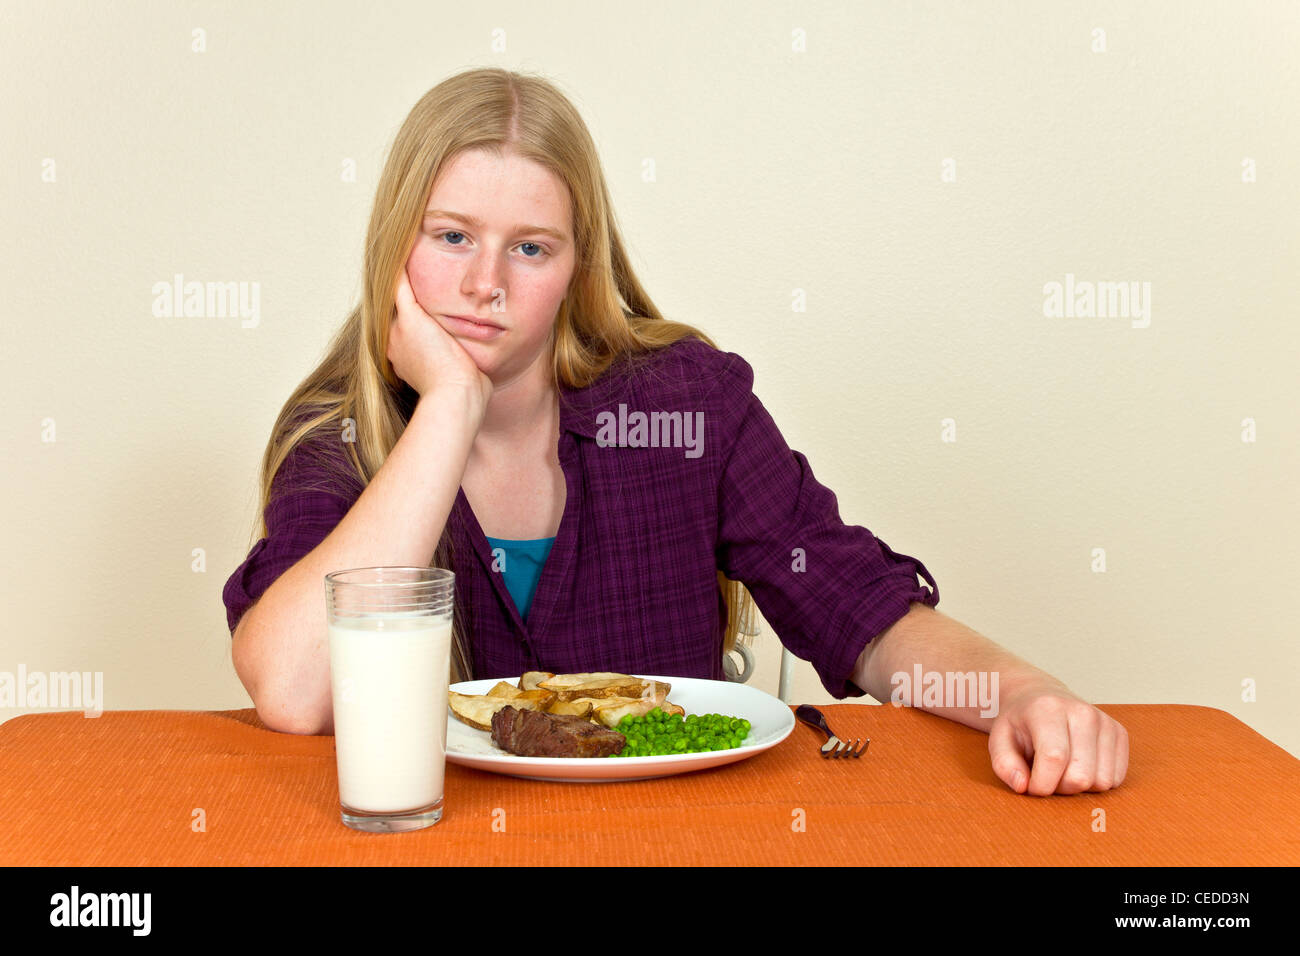 Strong willed stubborn Unhappy Teenage girl Sitting table unhealthy attitude towards food dislikes won't eat - Stock Image